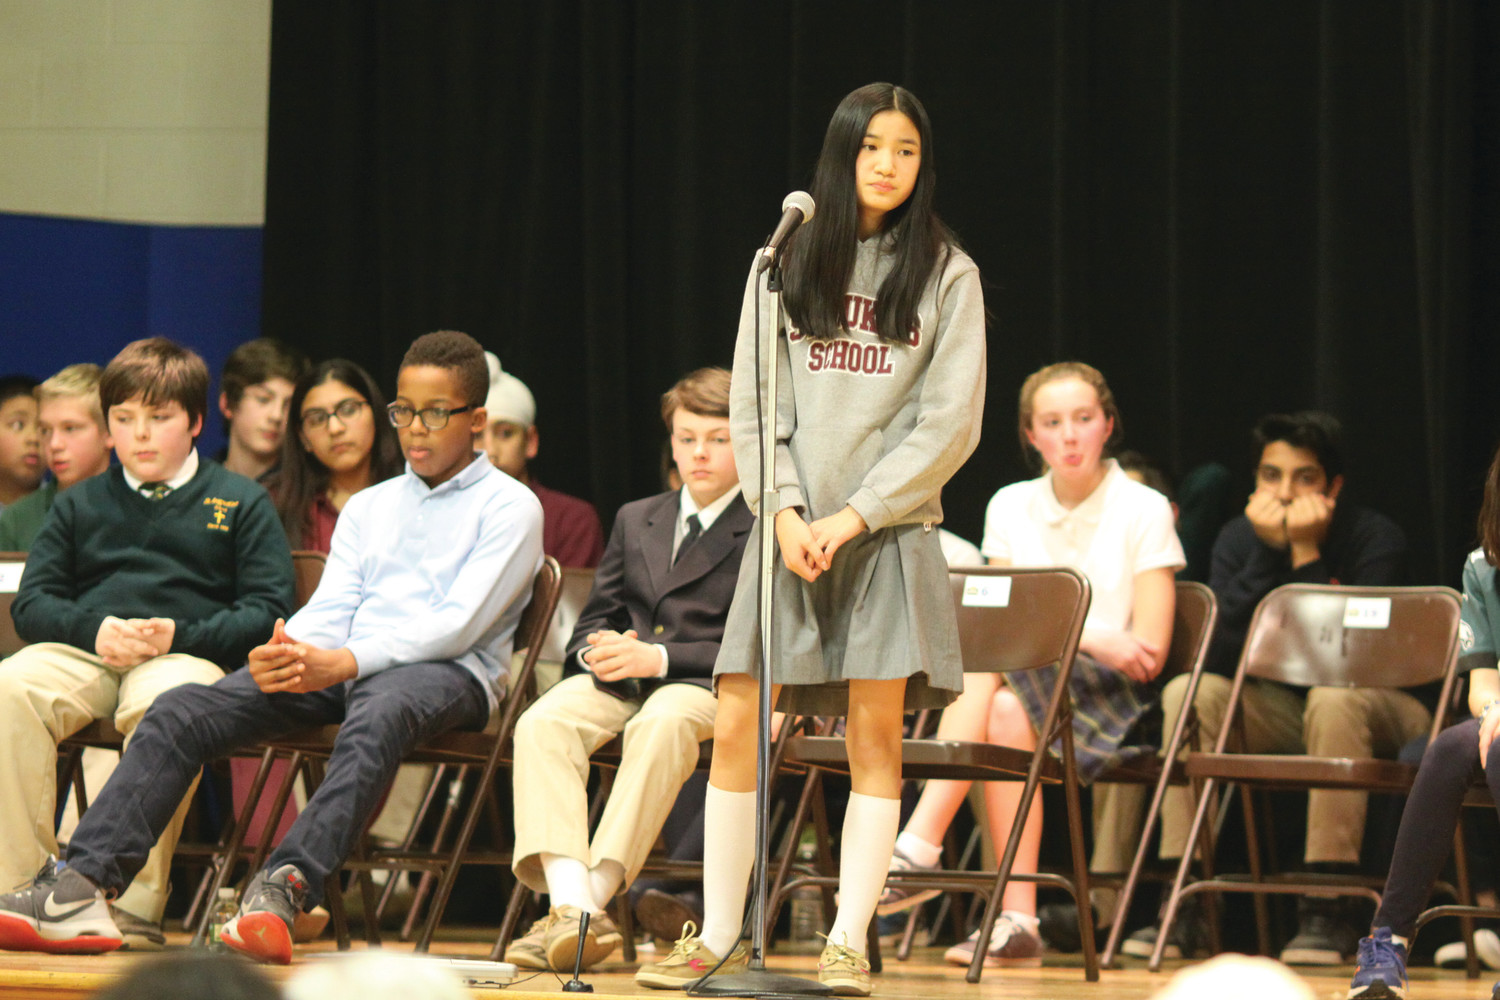 Mary Rose Comerford, an eighth grader representing St. Luke School, Barrington, waits for her word as other students nervously prepare for the second round.